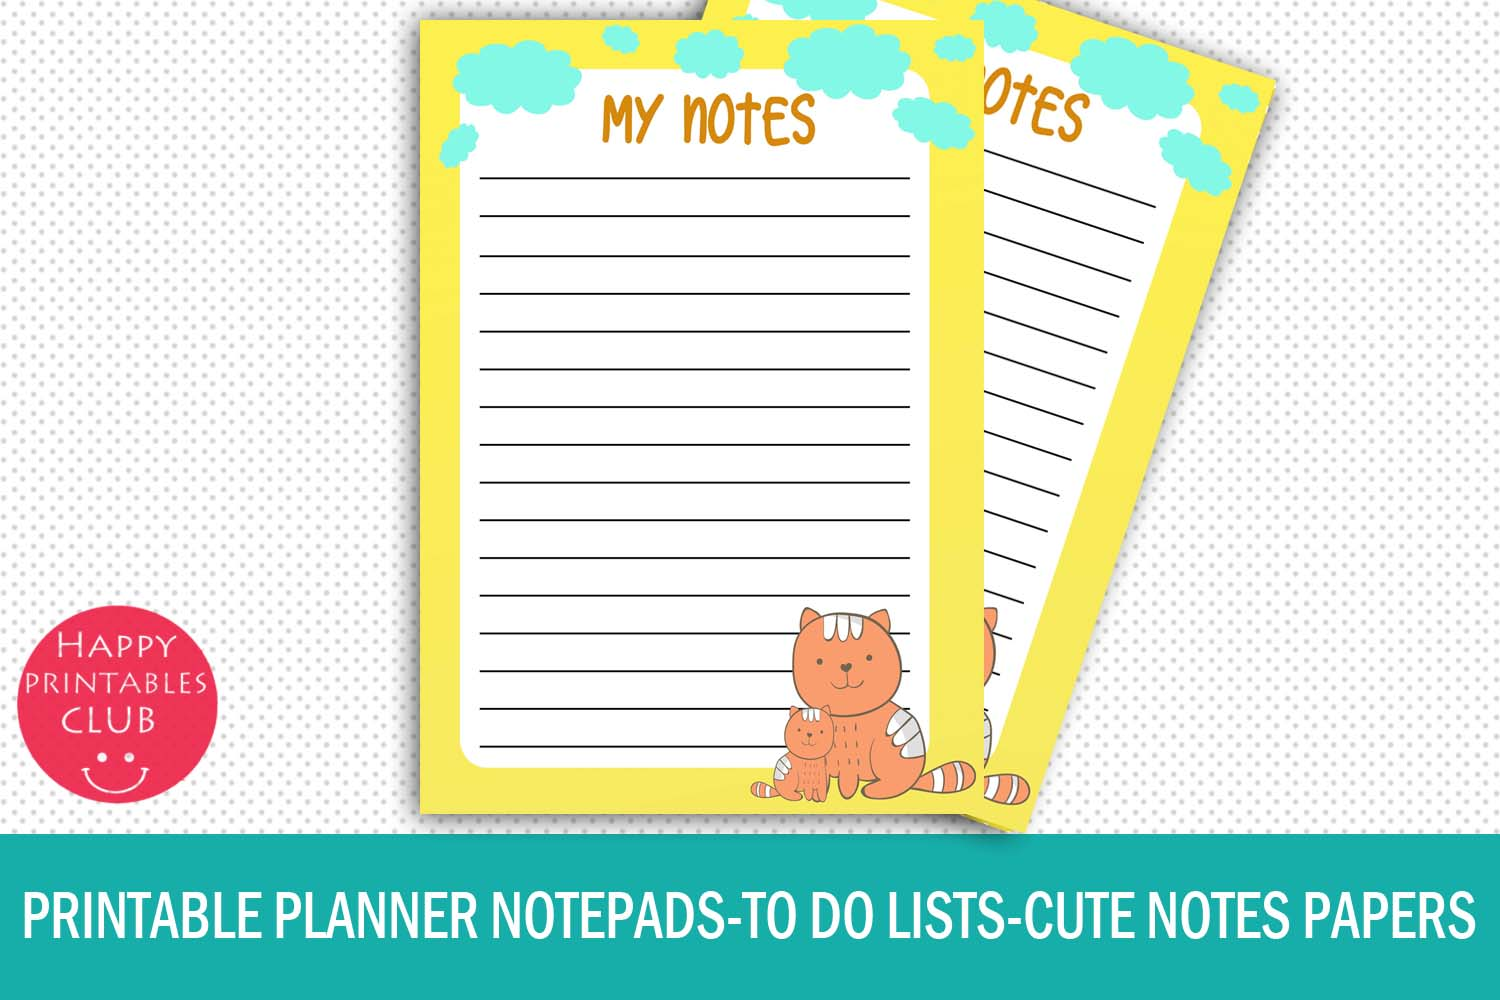 graphic regarding Printable Notepads identify Printable Planner Notepads-In the direction of Do Lists Printable Notepads